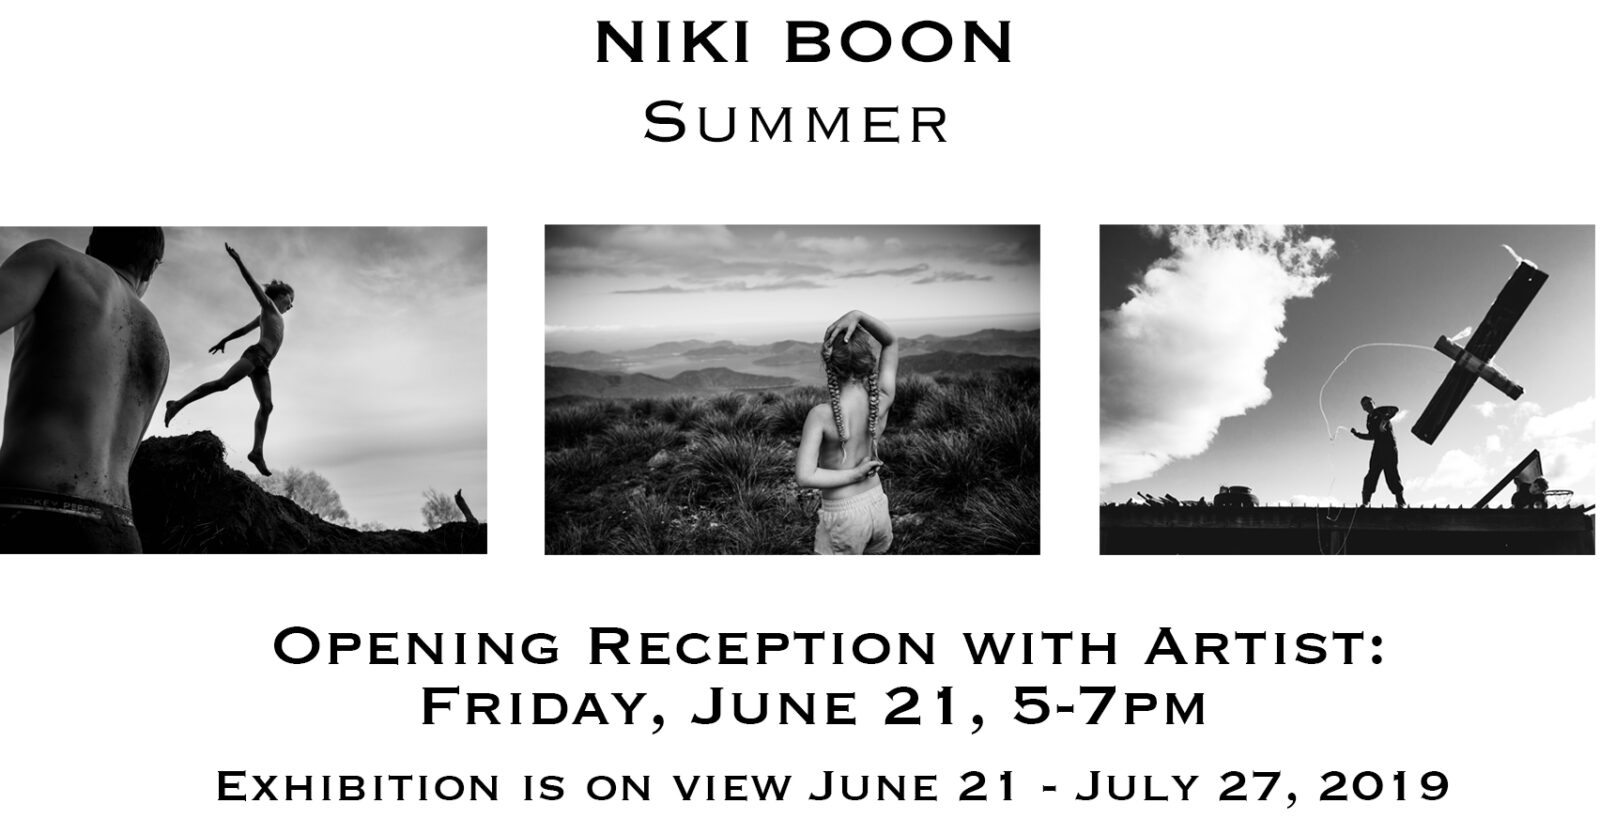 exhibition announcement for niki boon's show, summer, opening on friday, june 21 and on view through July 27, 2019.